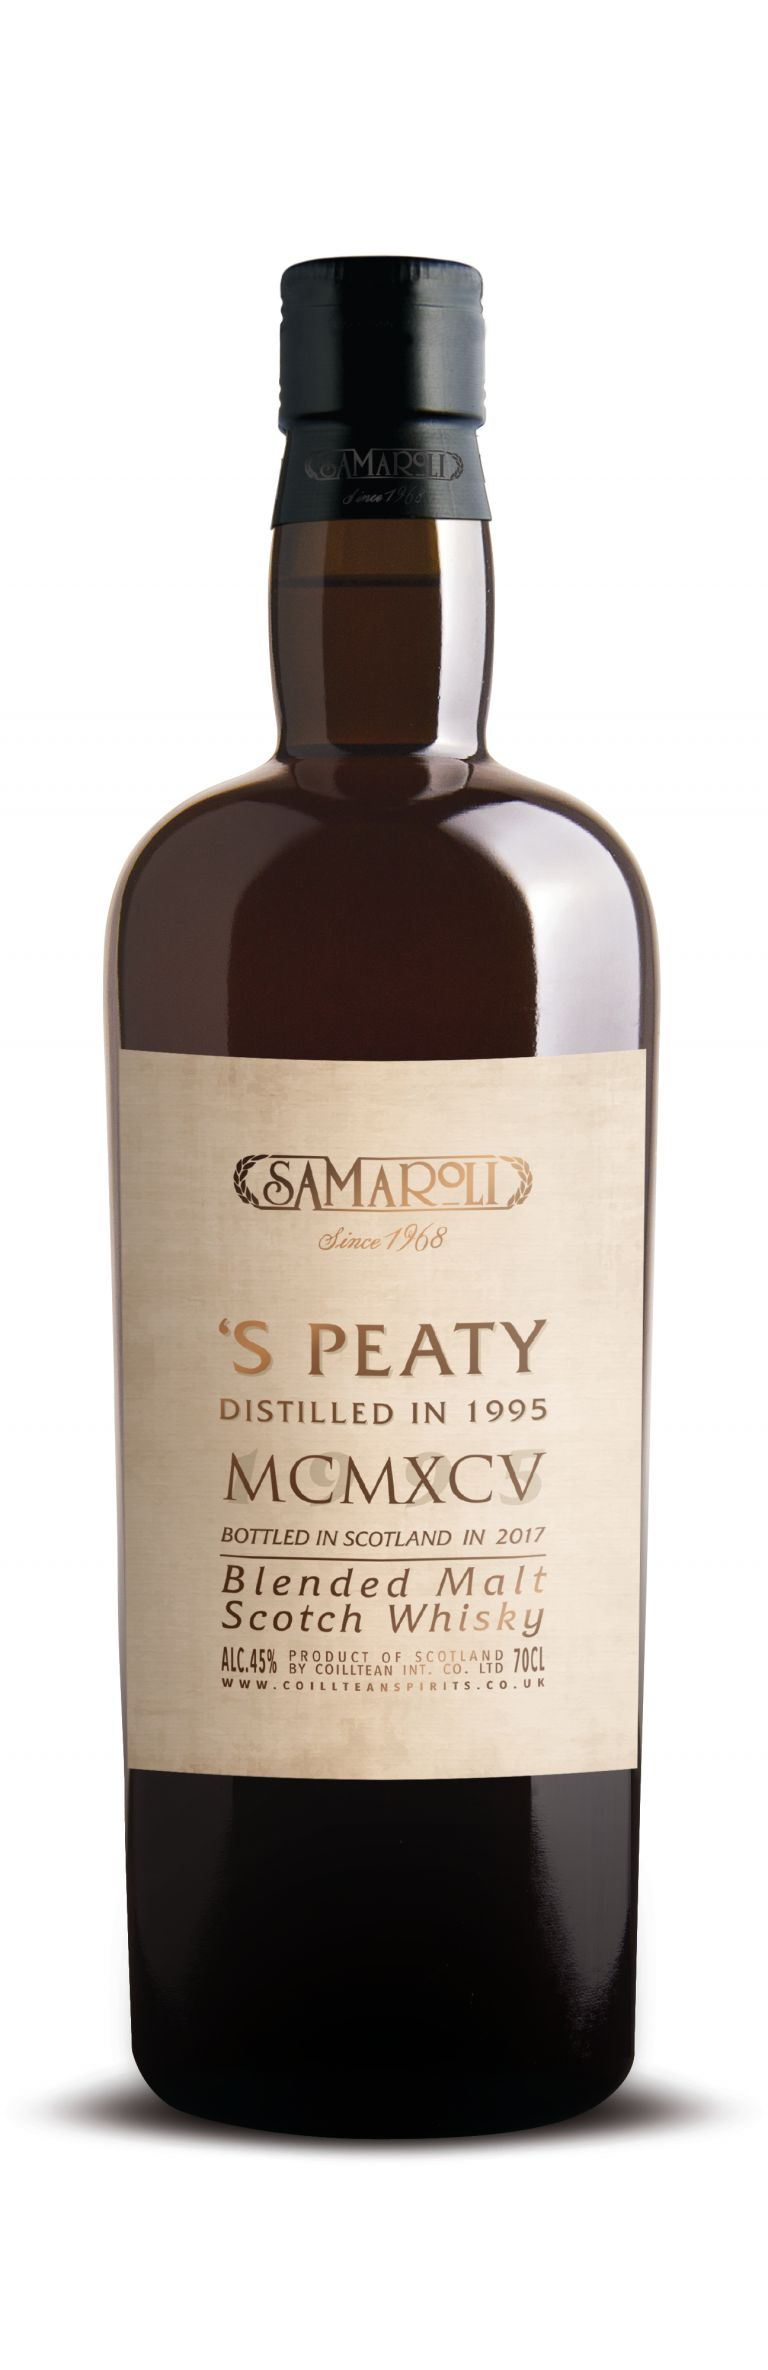 1995 'S Peaty - Blended Malt Scotch Whisky - ed. 2017 - 70 cl